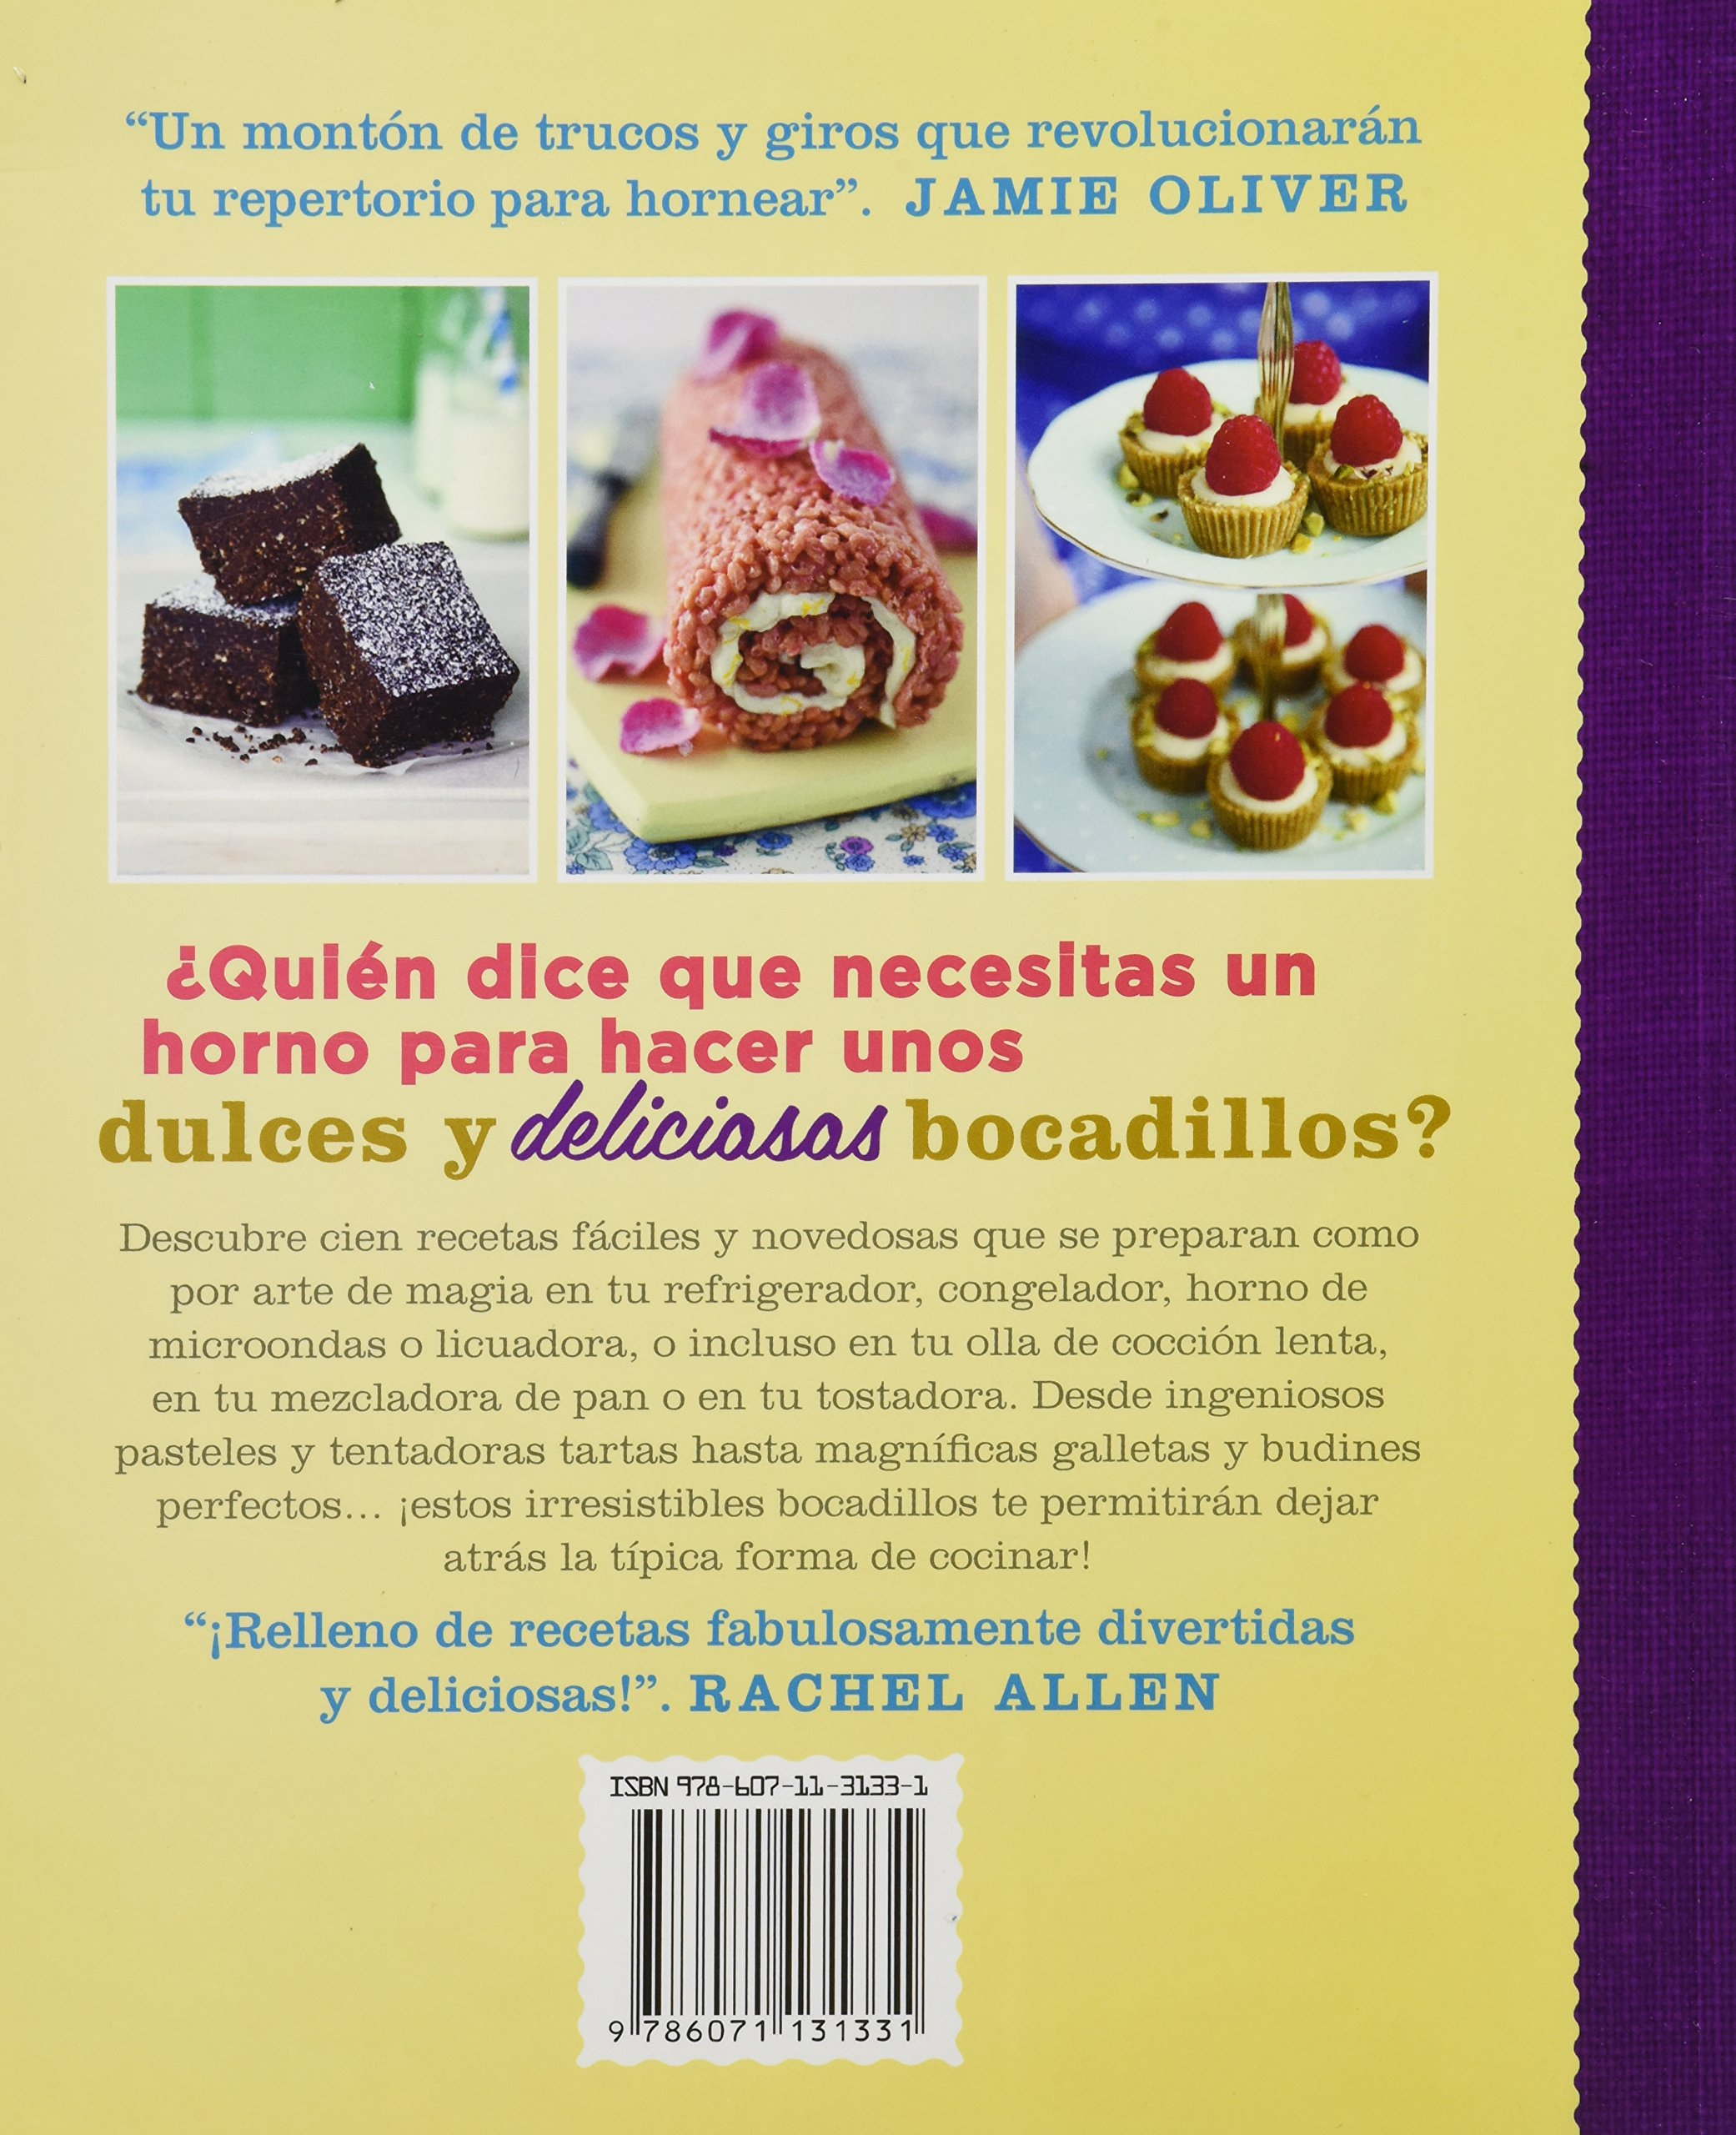 100 postres sin hornear: SHARON HEARNE SMITH: 9786071131331: Amazon.com: Books